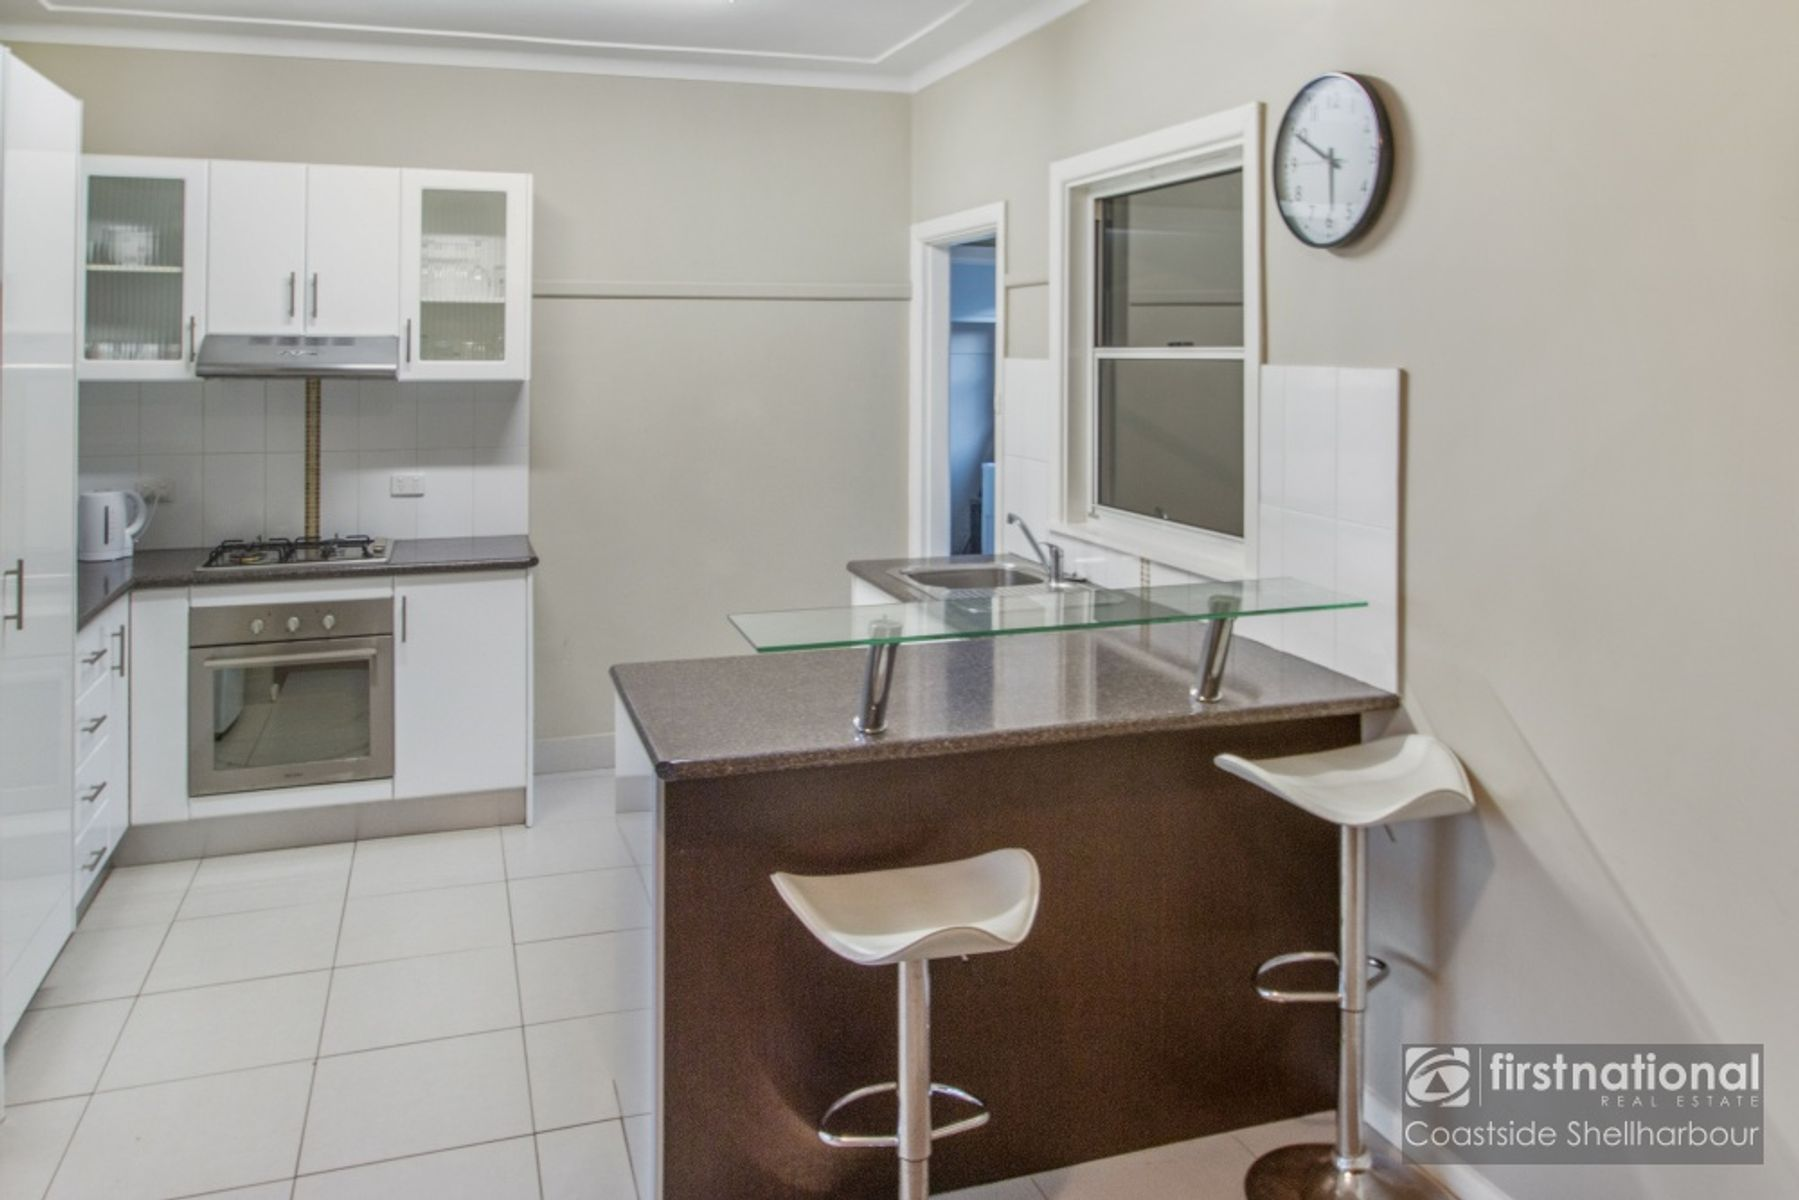 1/63 Wentworth Street, Shellharbour, NSW 2529